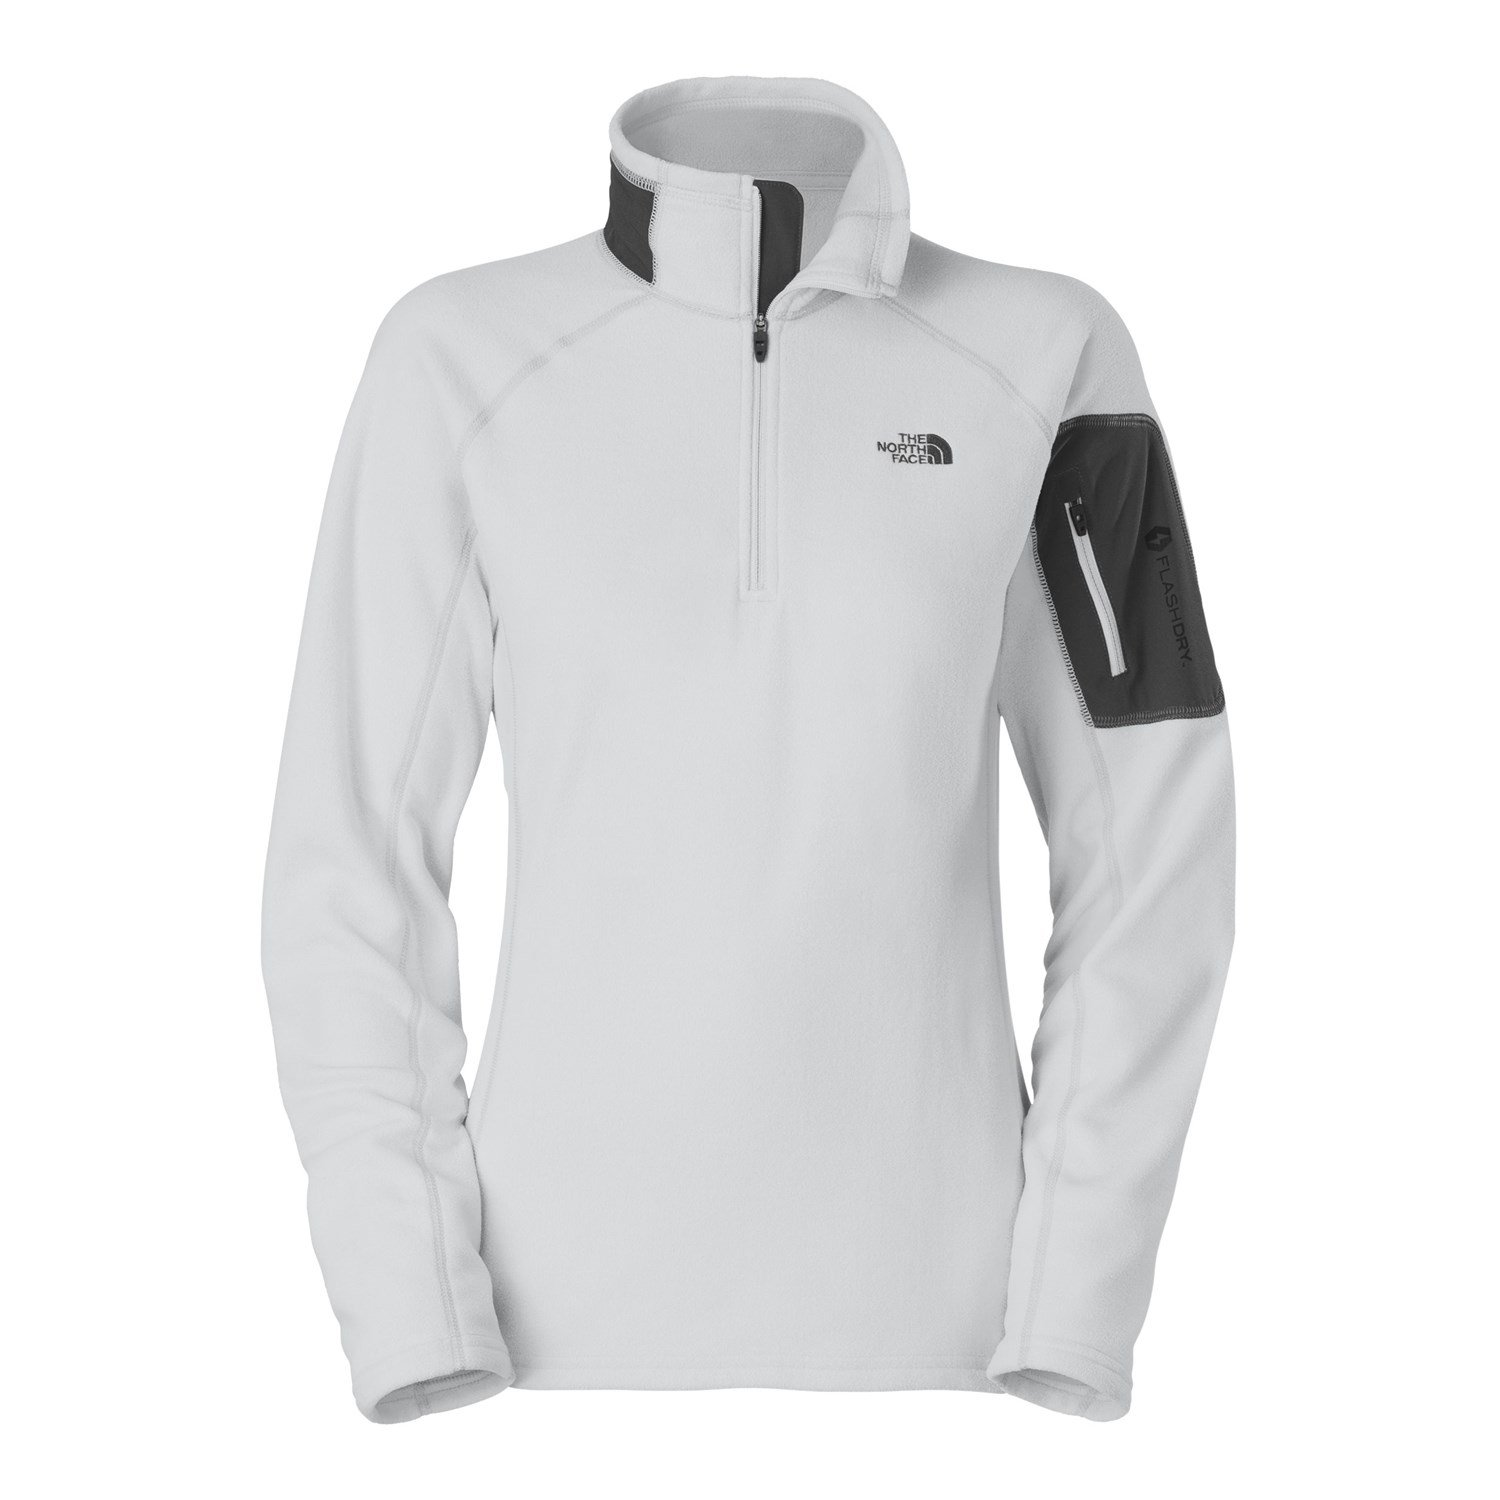 cbb2af5ef The North Face RDT 100 1/2 Zip Pullover - Women's | evo